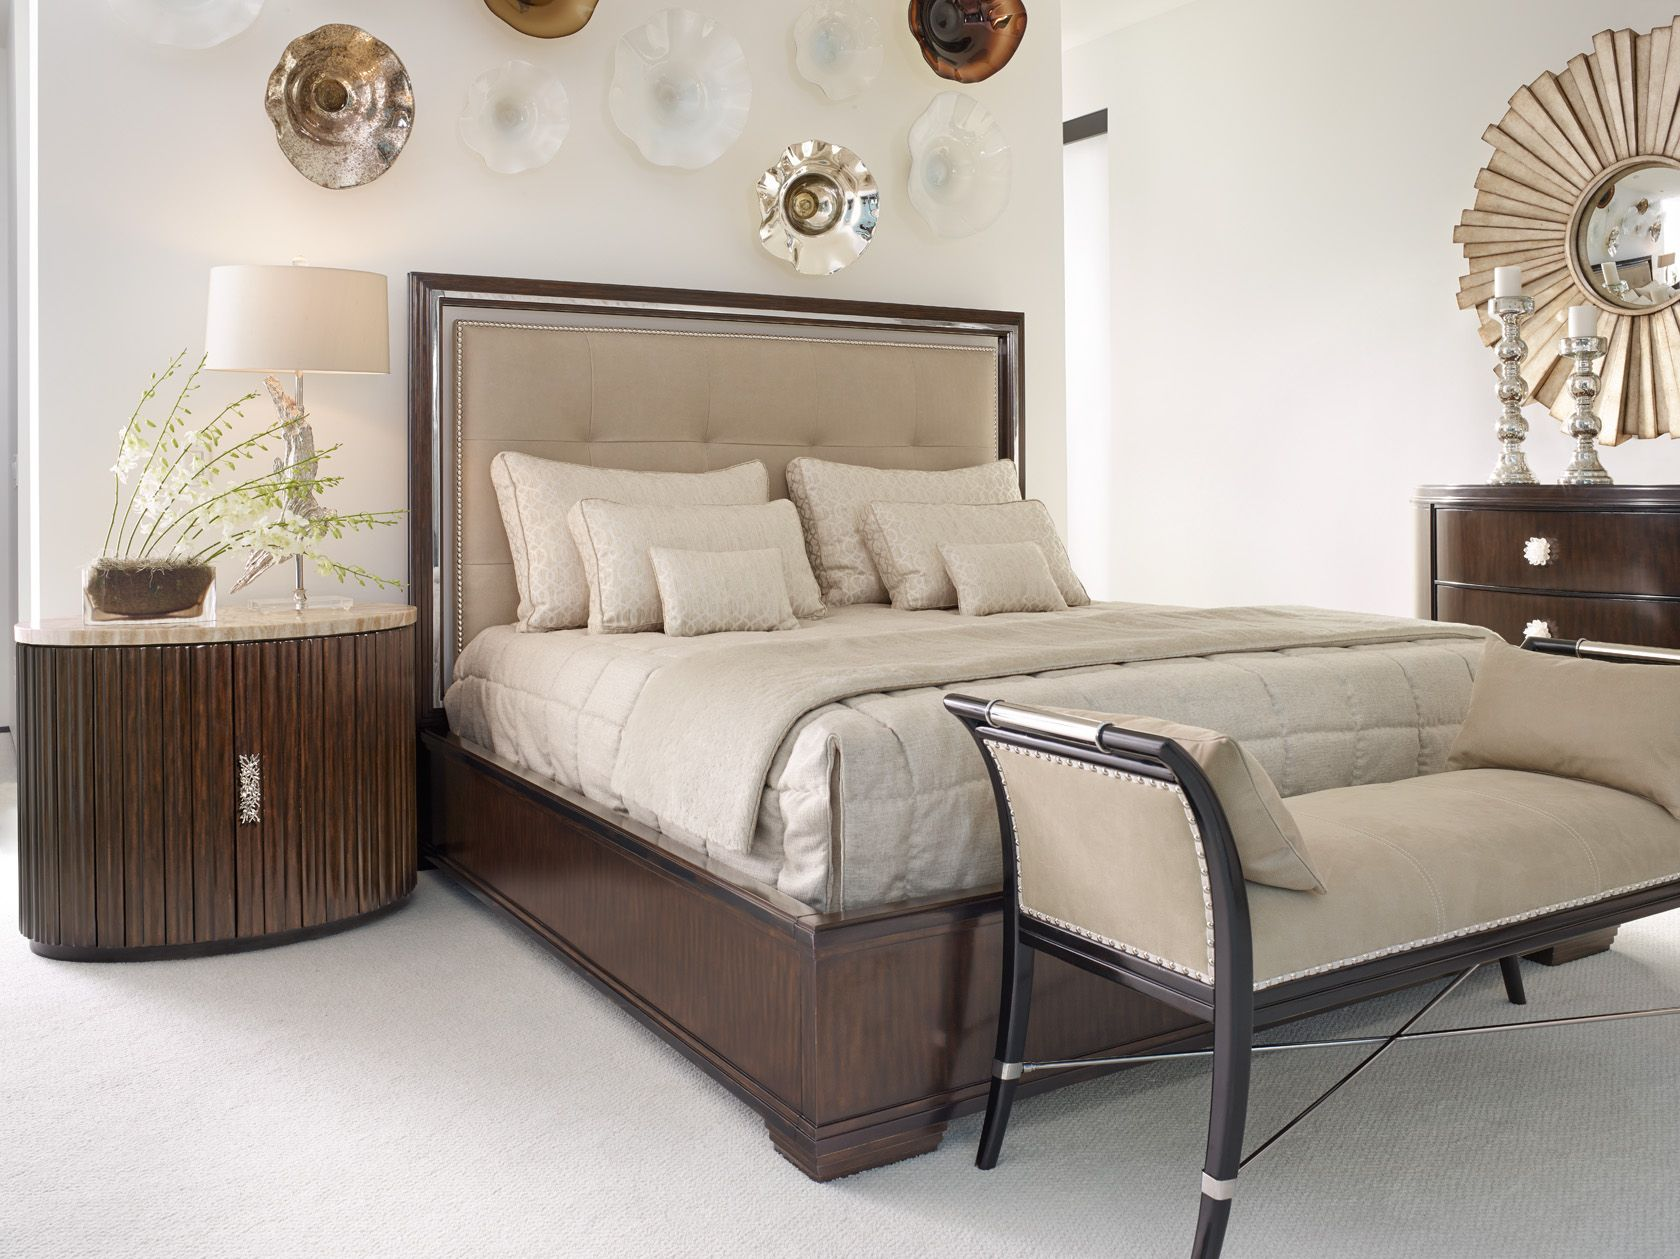 The Malibu Collection Sleigh Bed By Marge Carson The Malibu Collection A Perfect Blend Of